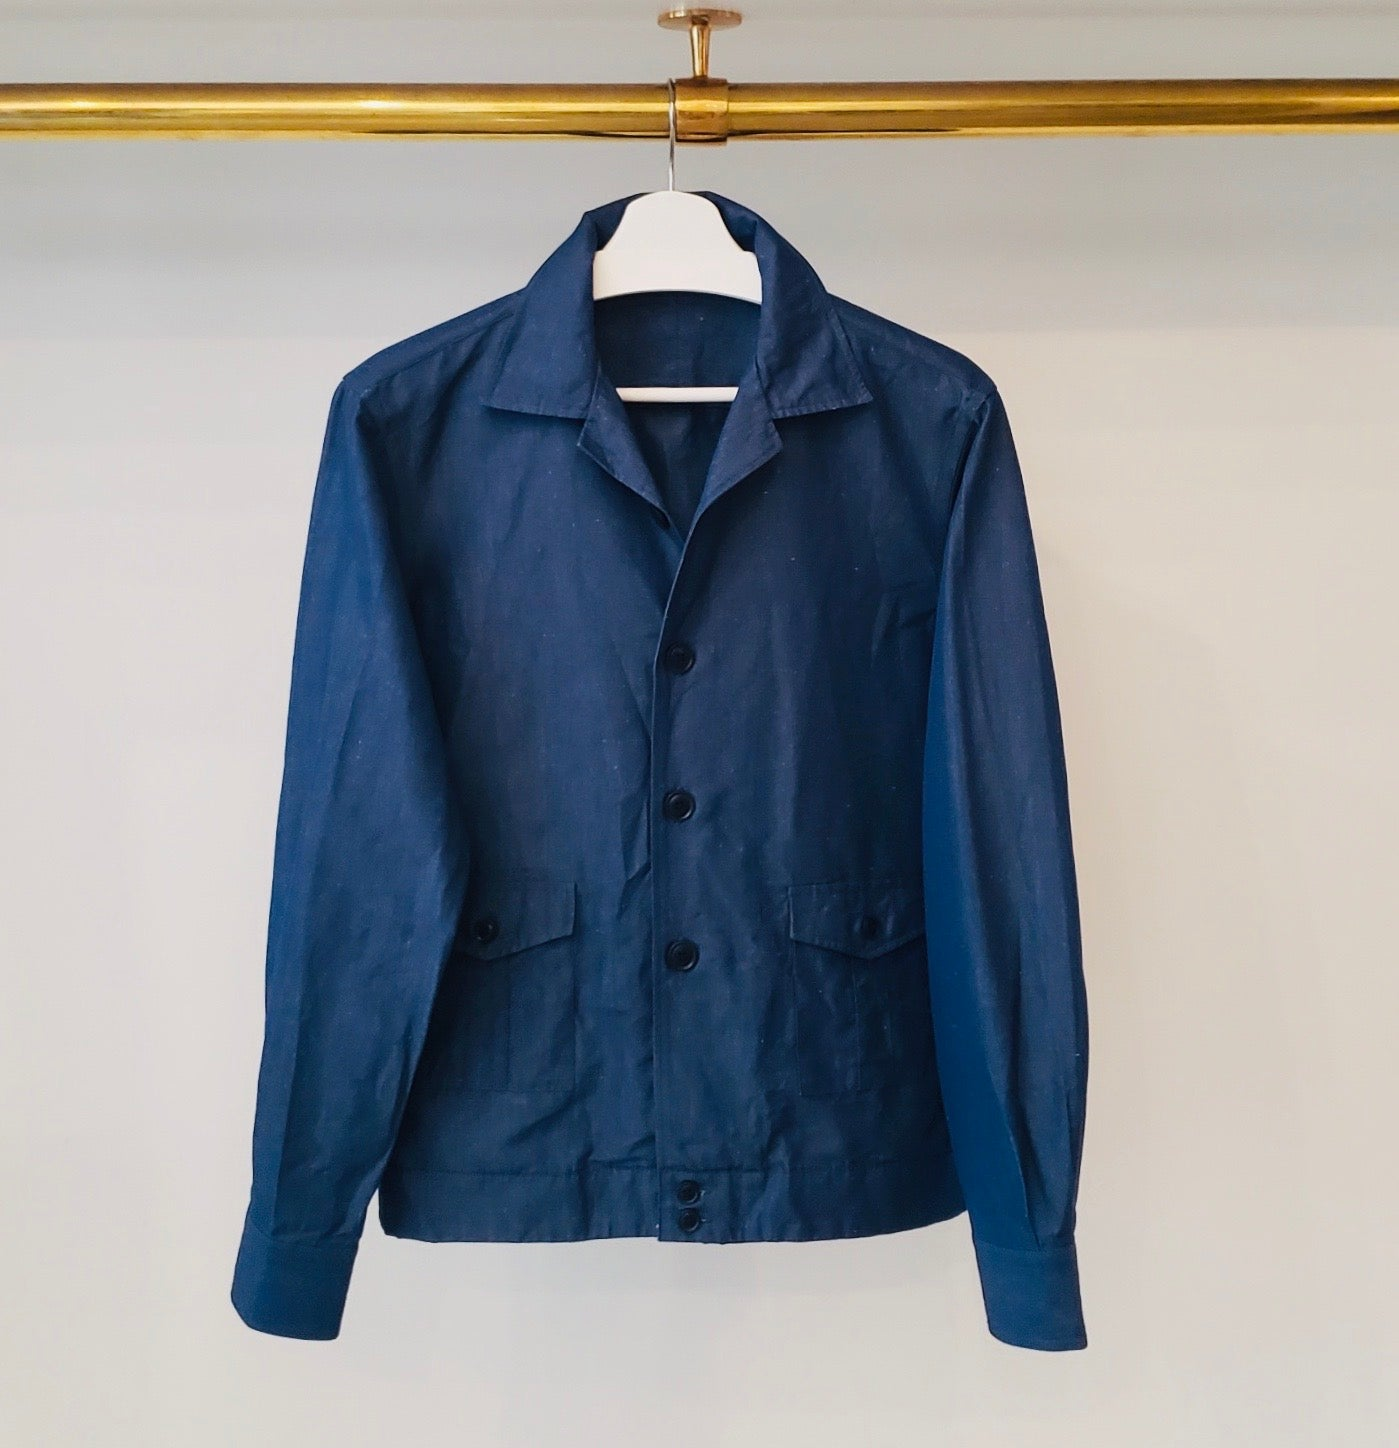 Ring Jacket Japanese Chambray Shirt Jacket